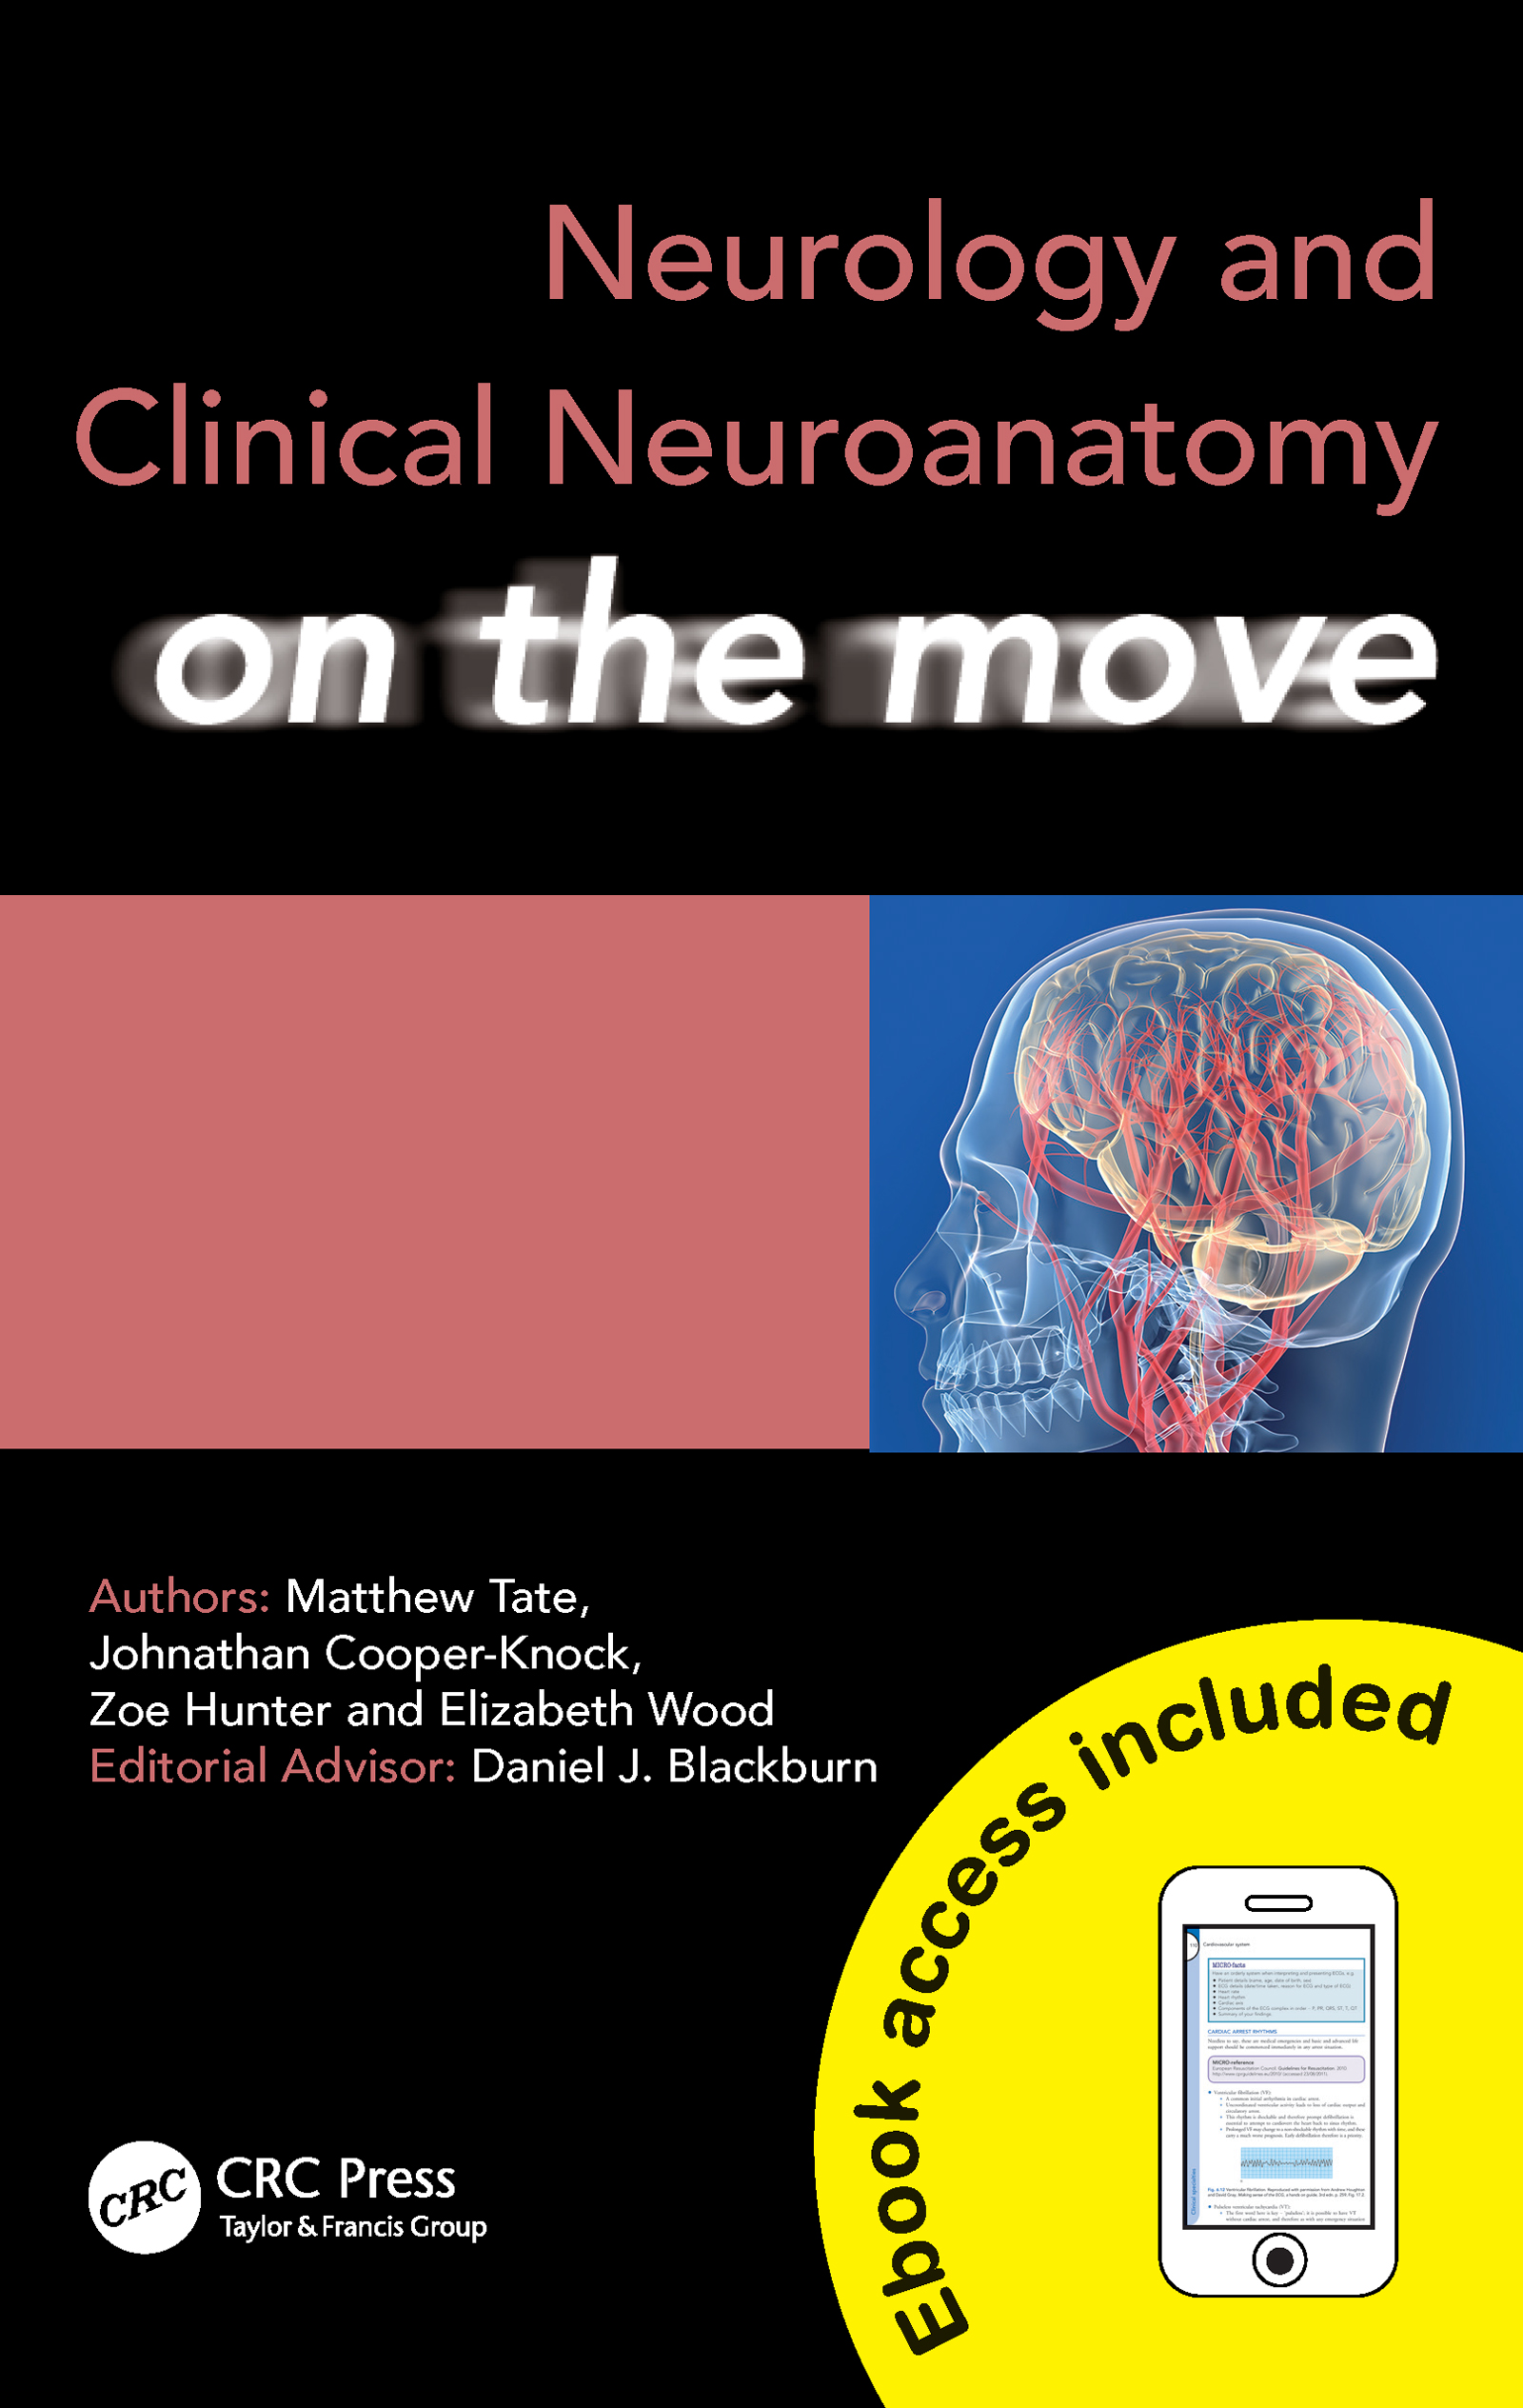 Neurology and Clinical Neuroanatomy on the Move: 1st Edition (Pack - Book and Ebook) book cover